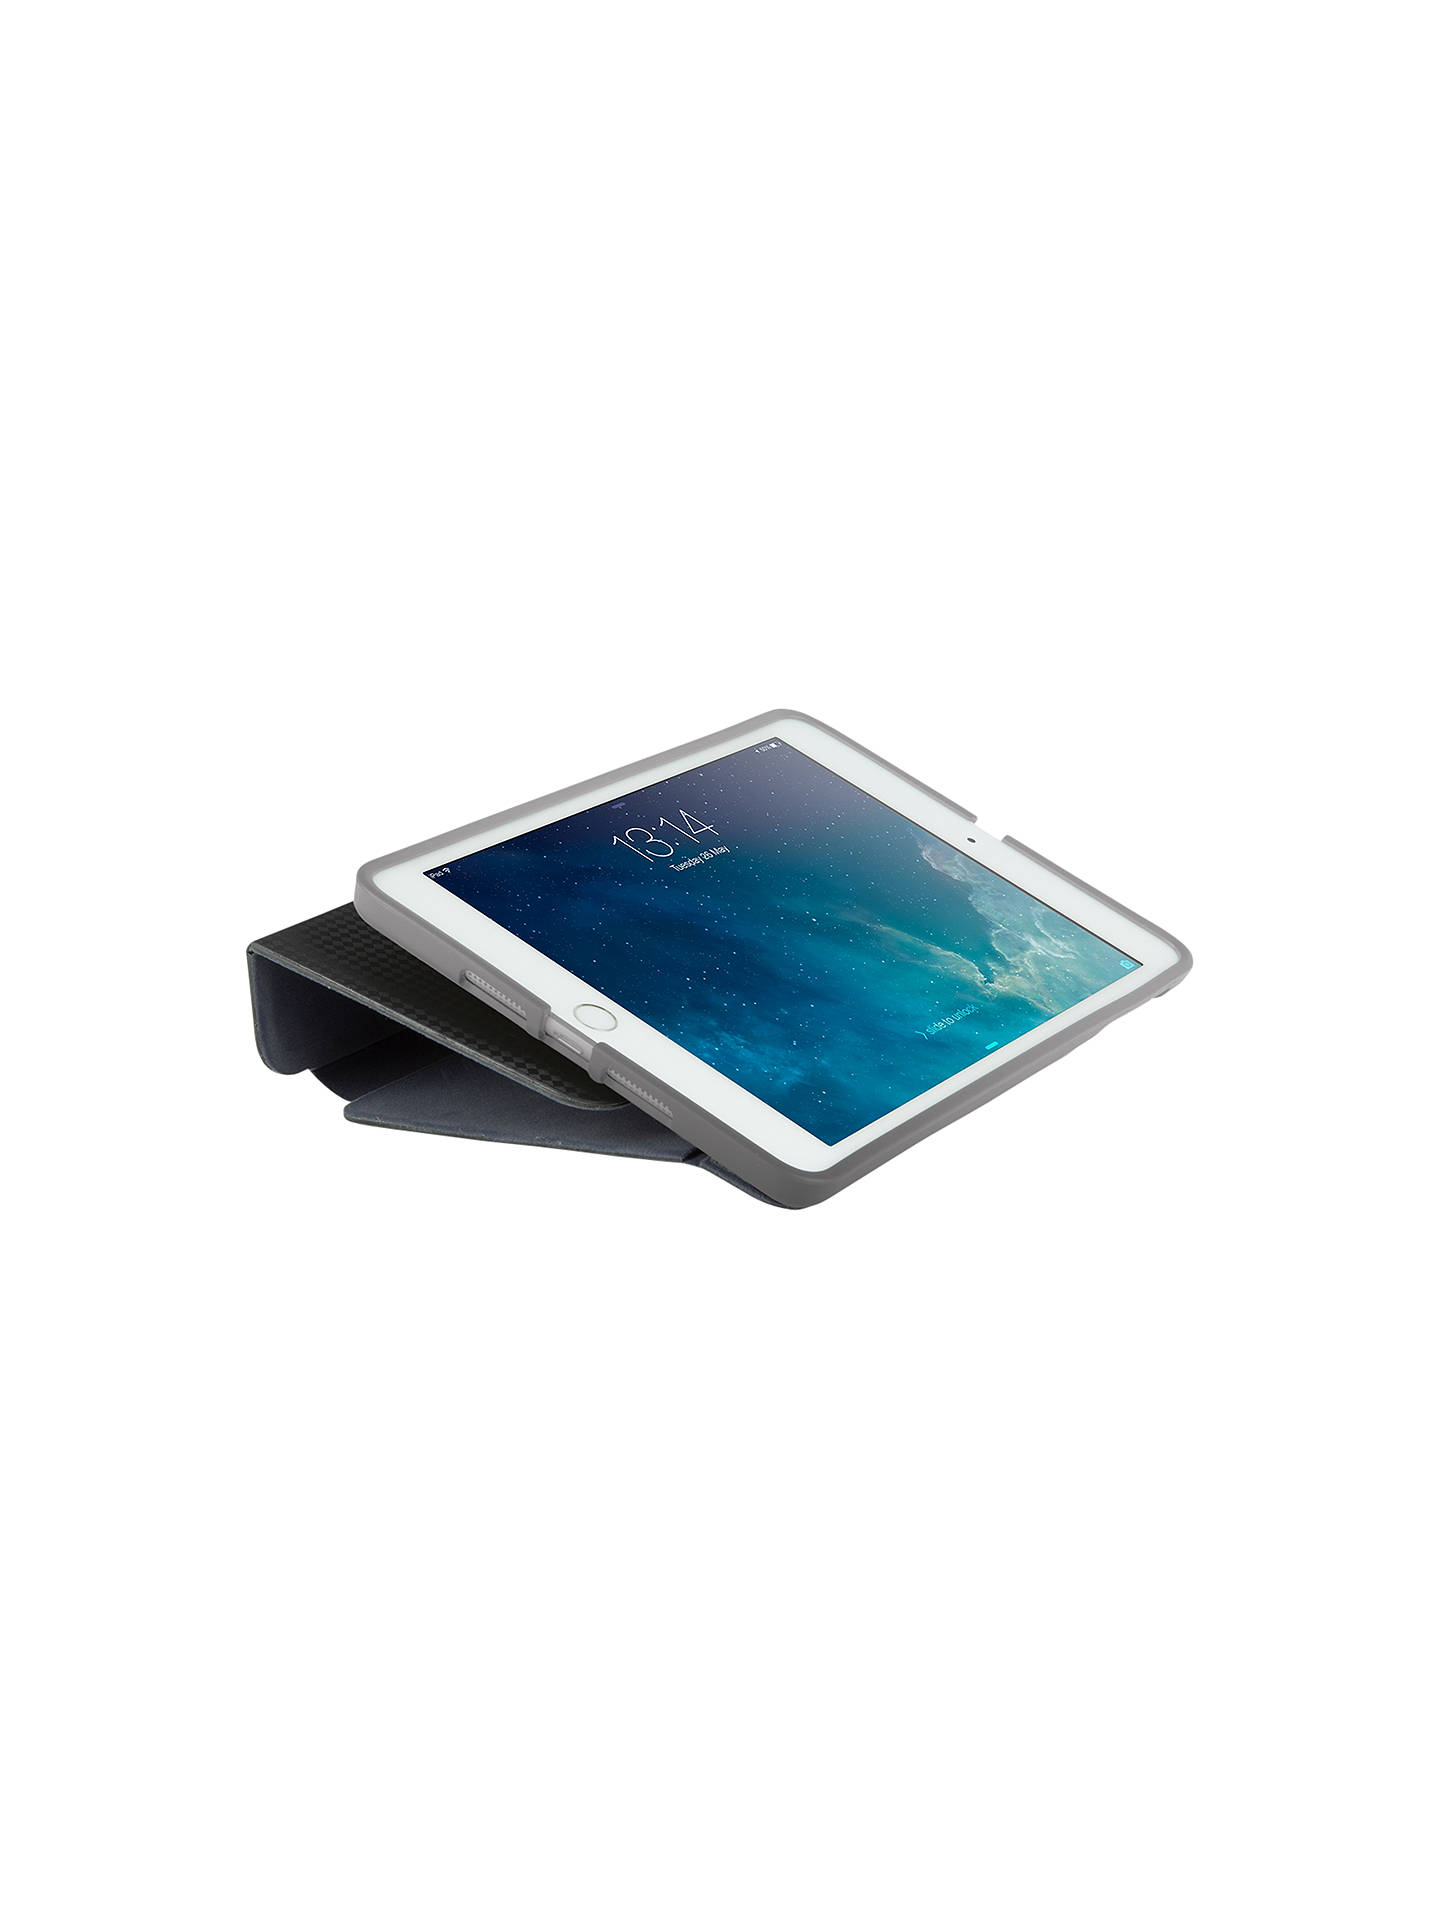 BuyTargus Click-In Case for iPad Mini 1/2/3/4, Black Online at johnlewis.com